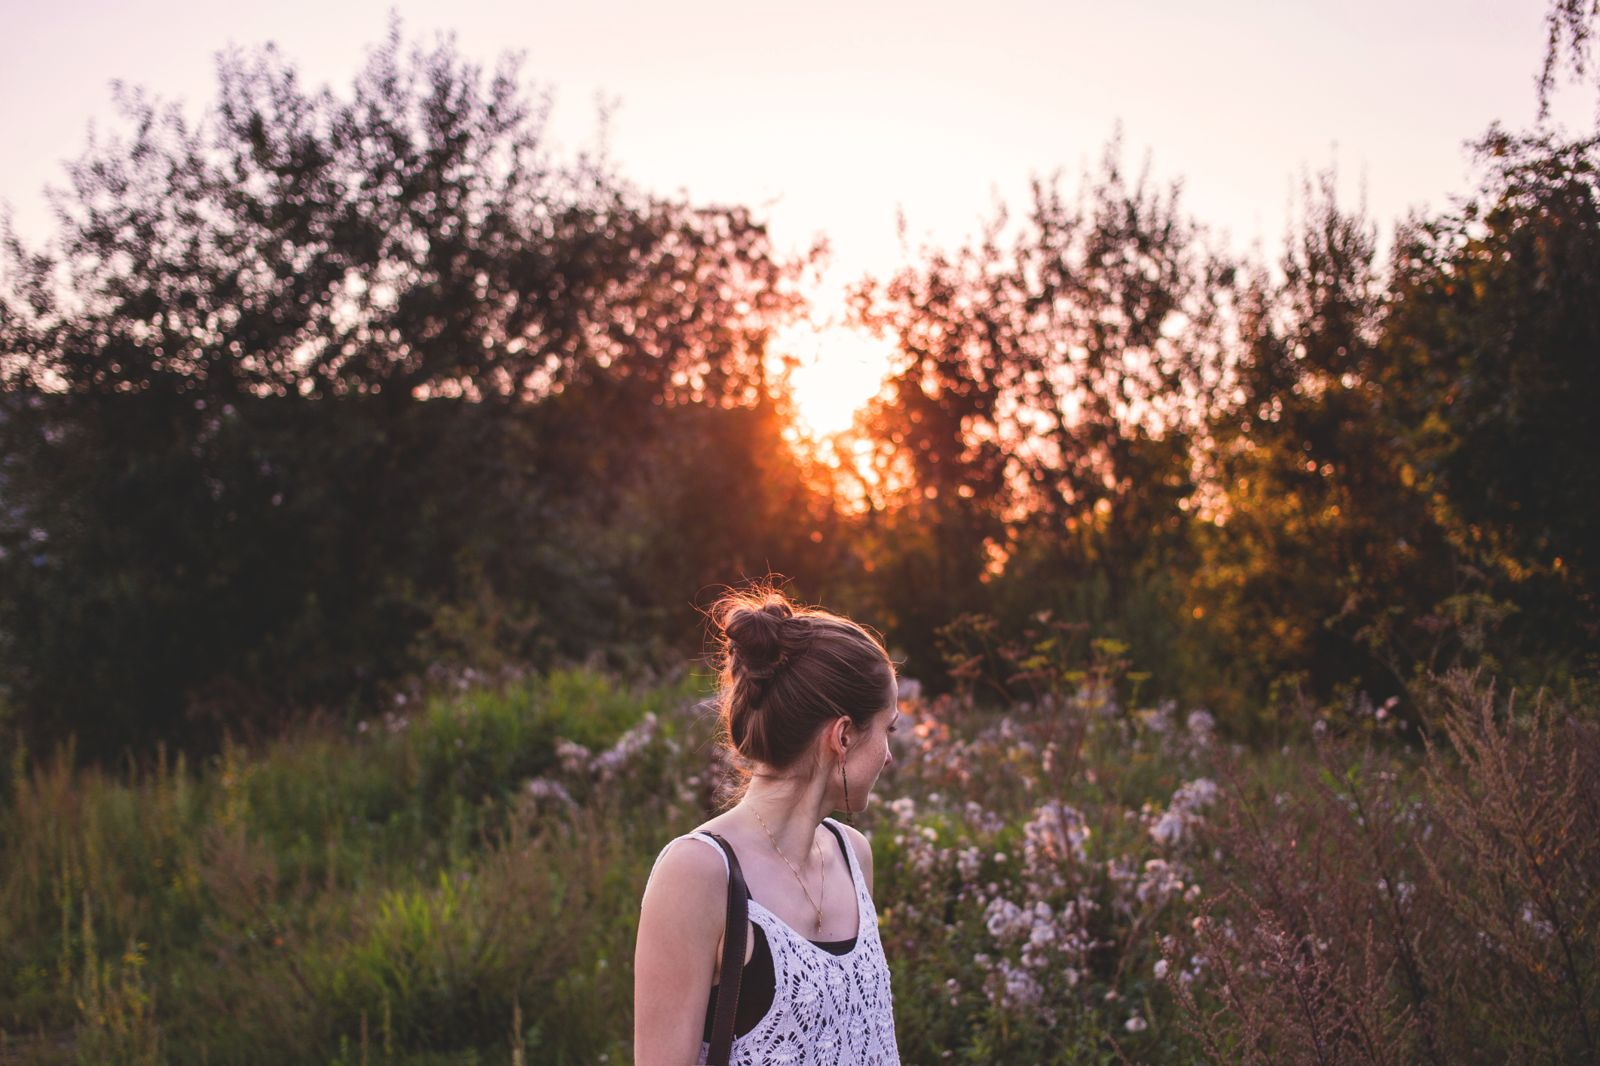 Woman Girl Beautiful Outdoors Trees Sunset Grass Flower - Nature Girl Looking Back - HD Wallpaper